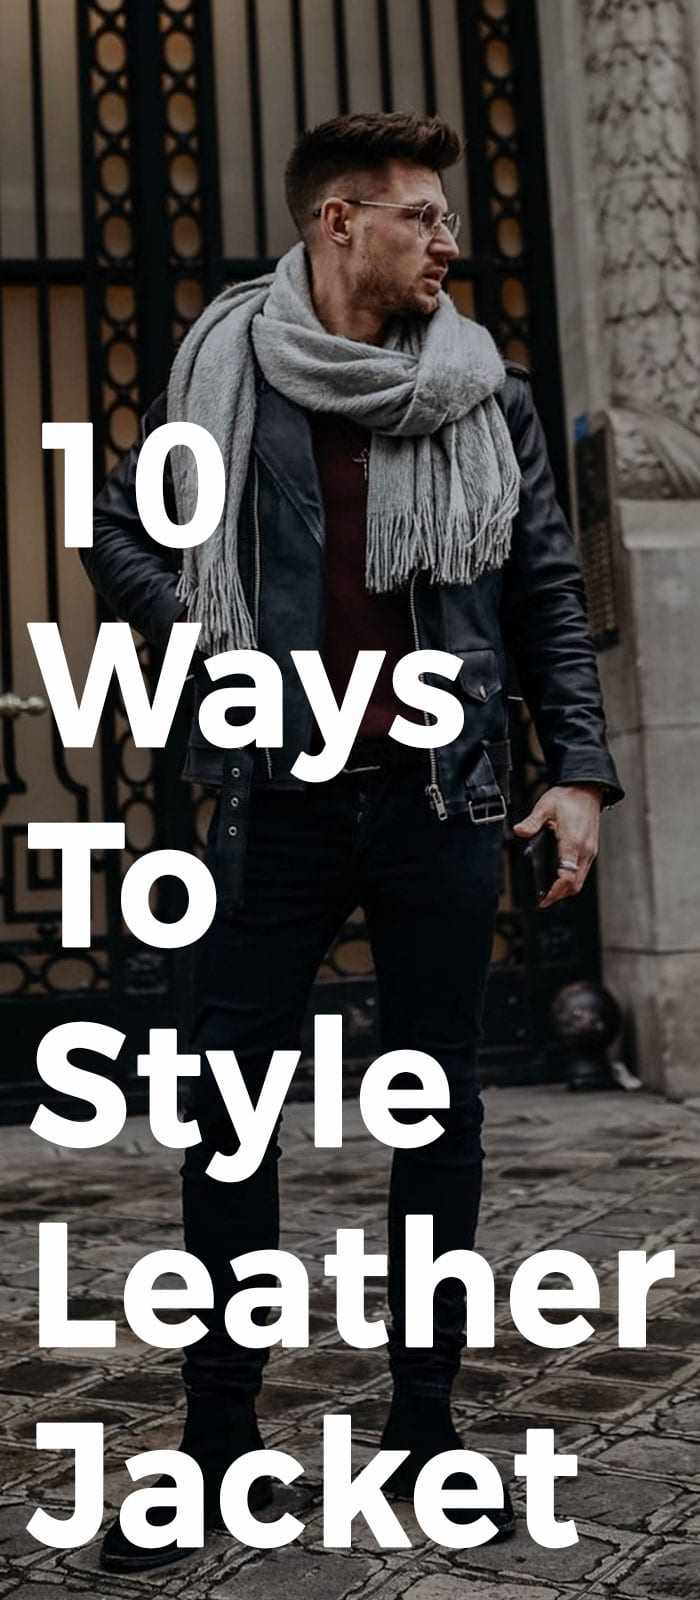 10 Ways To Style Leather Jacket